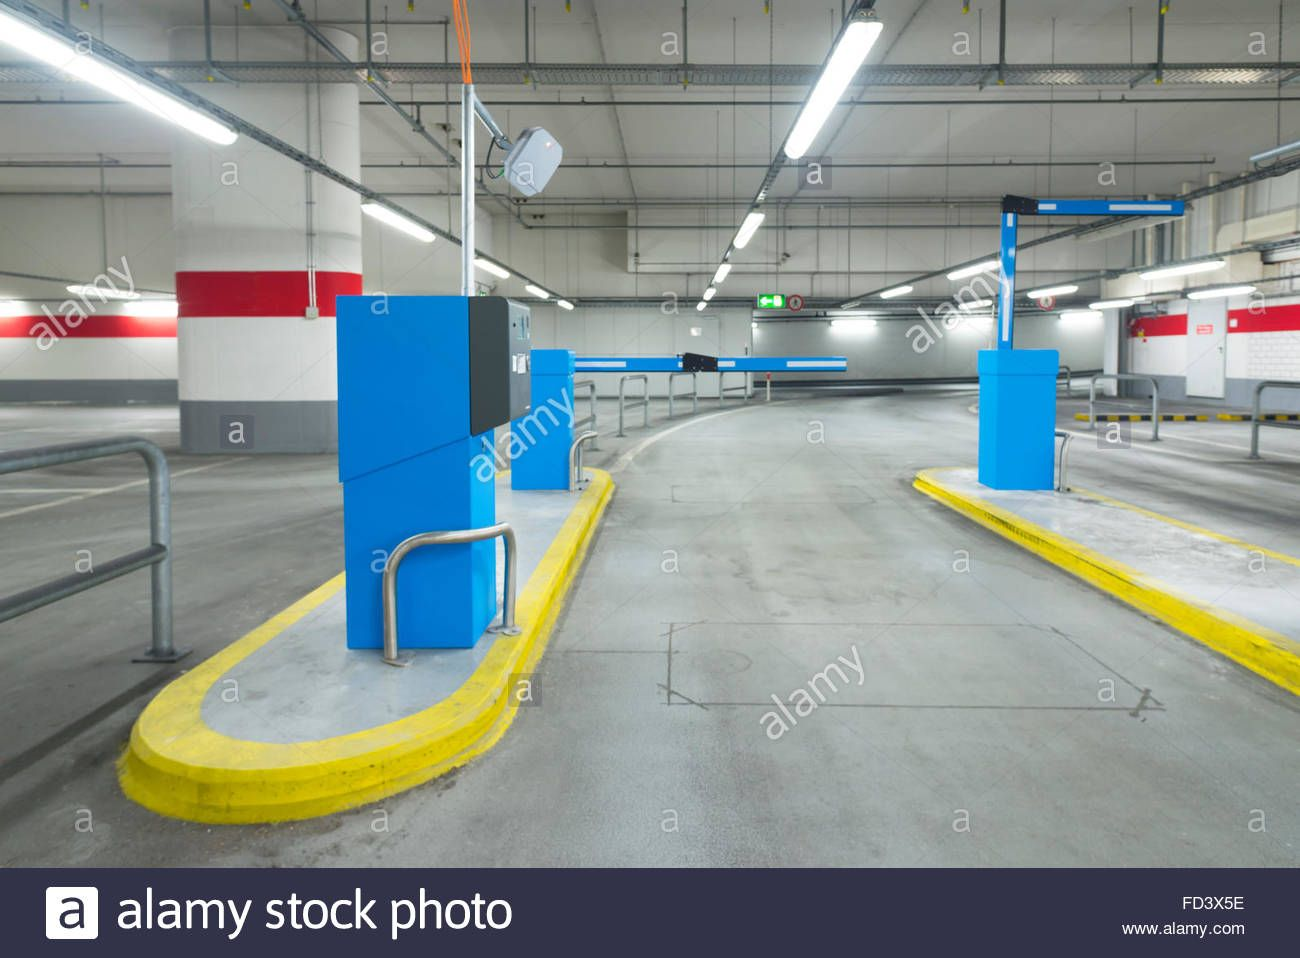 Exit Lane Of A Parking Garage With Barrier And Ticket Machines Stock Photo Parking Garage Stock Photos Photo